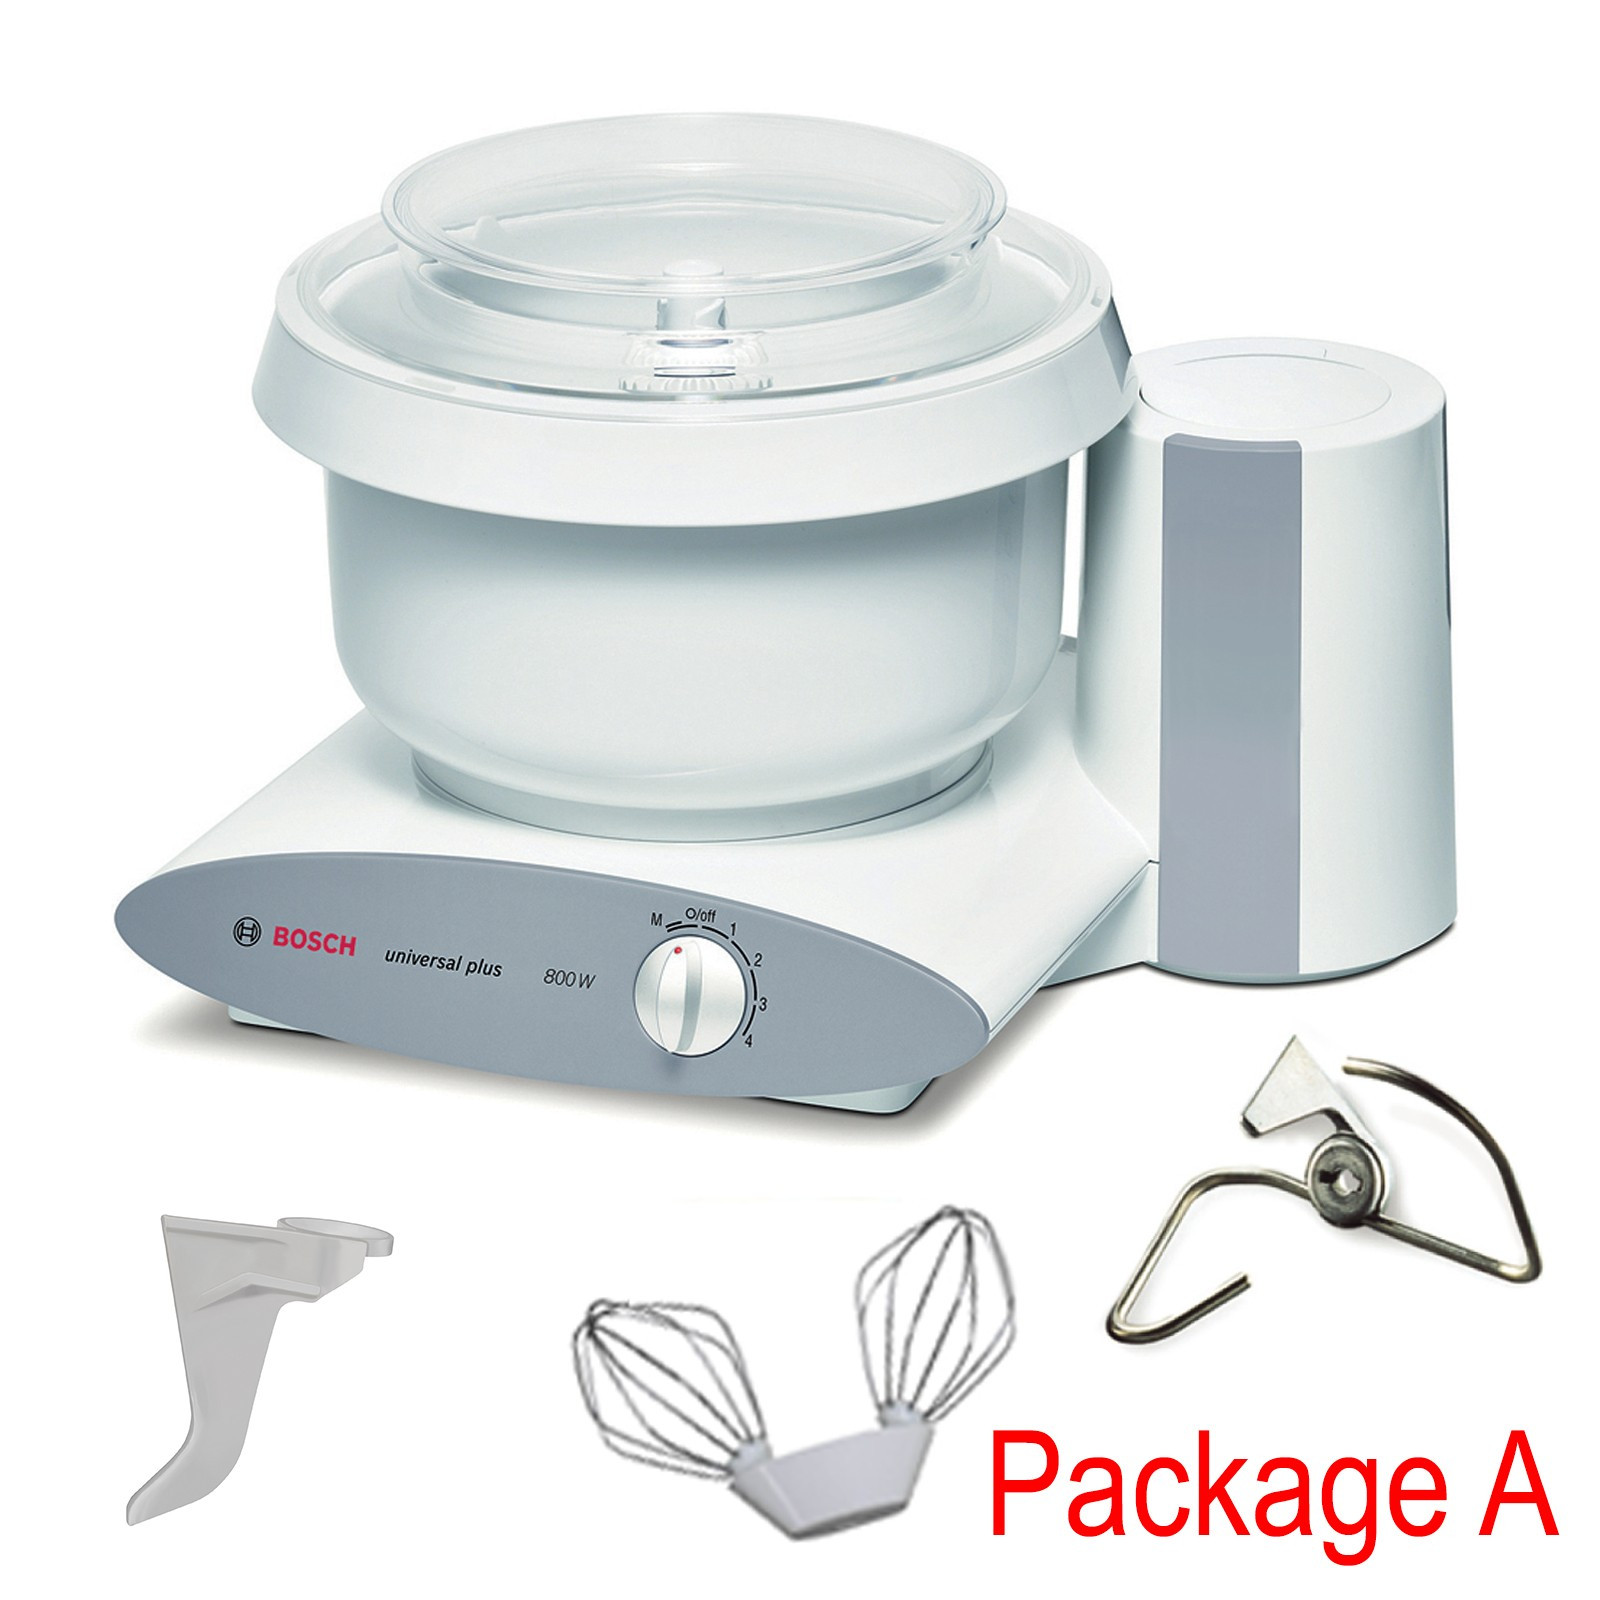 Natural Healthy Cooking Bosch Universal Plus Mixer Package A